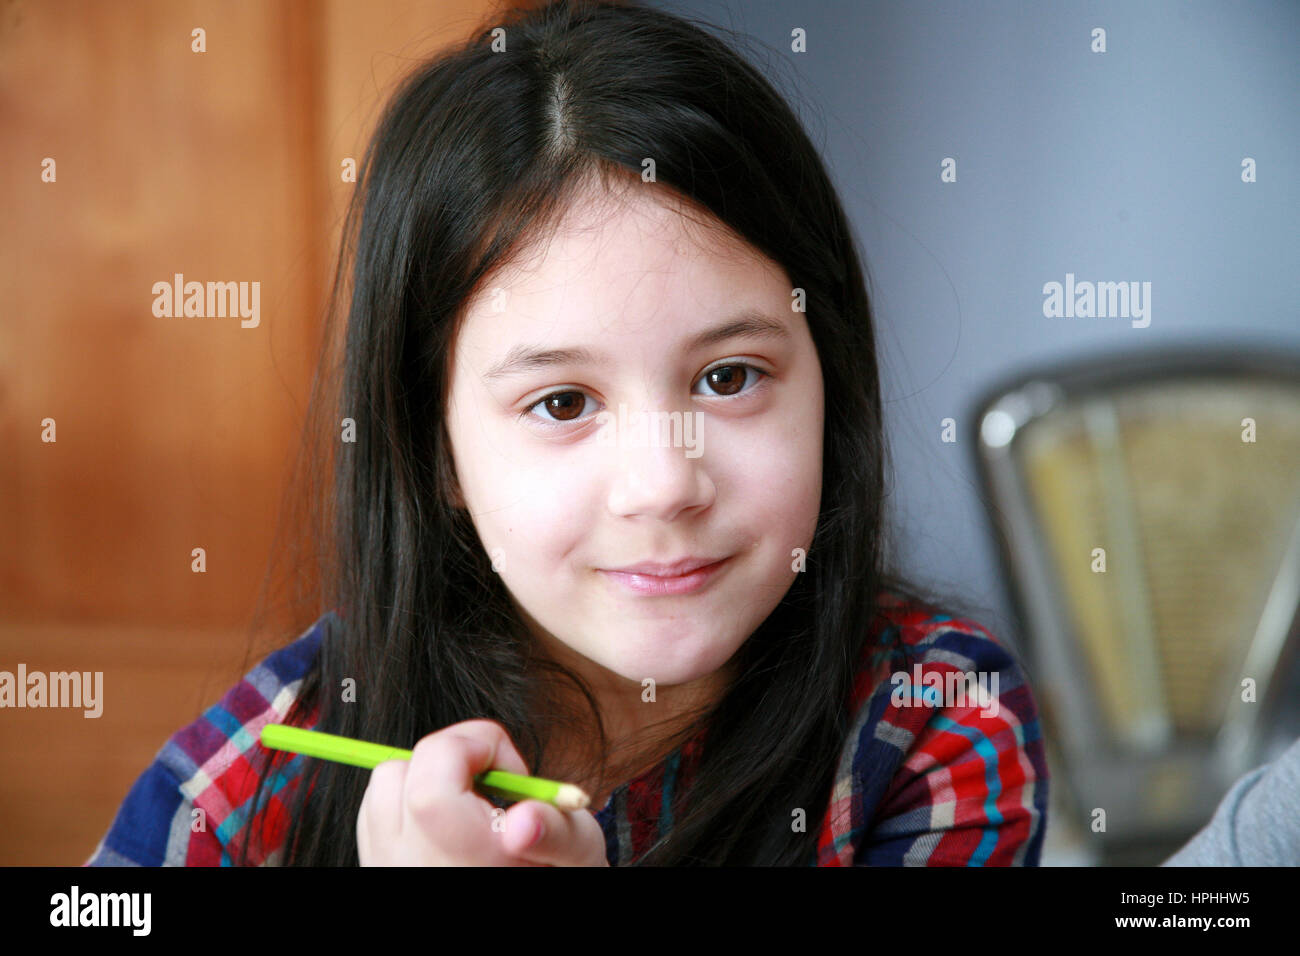 young girl smiling at camera - Stock Image